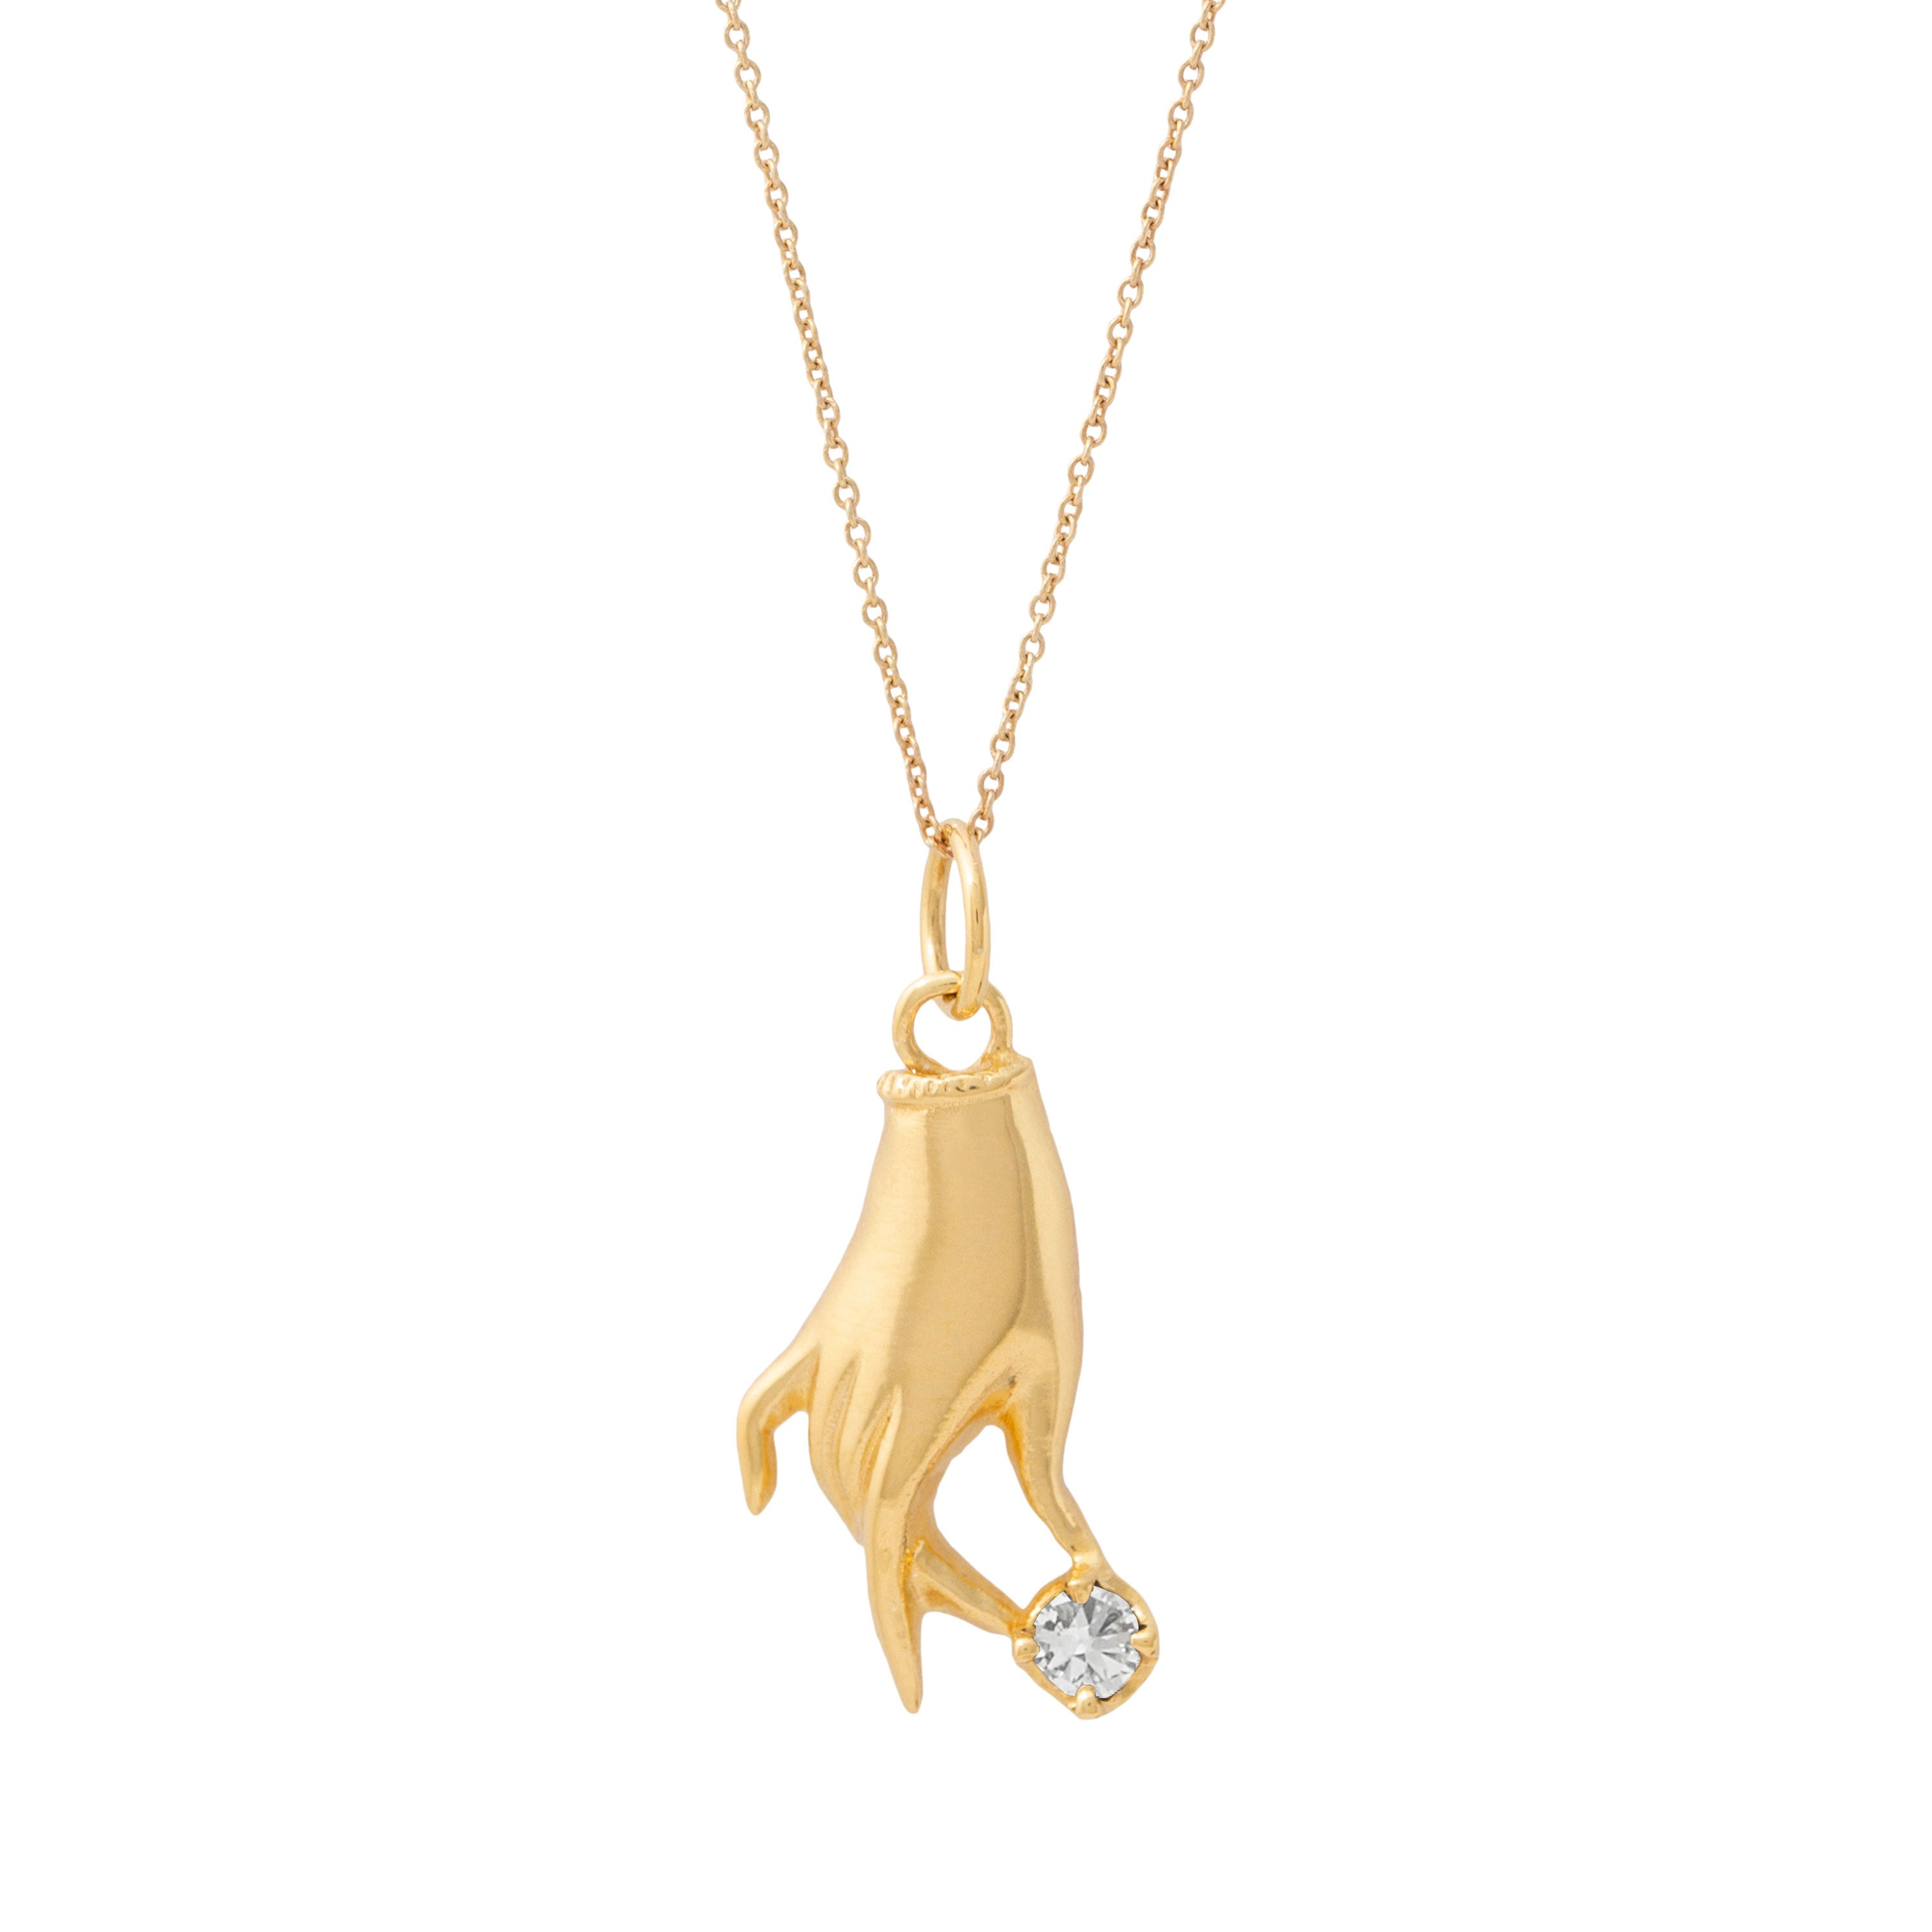 The F&B Yellow Gold Birthstone Hand Charm